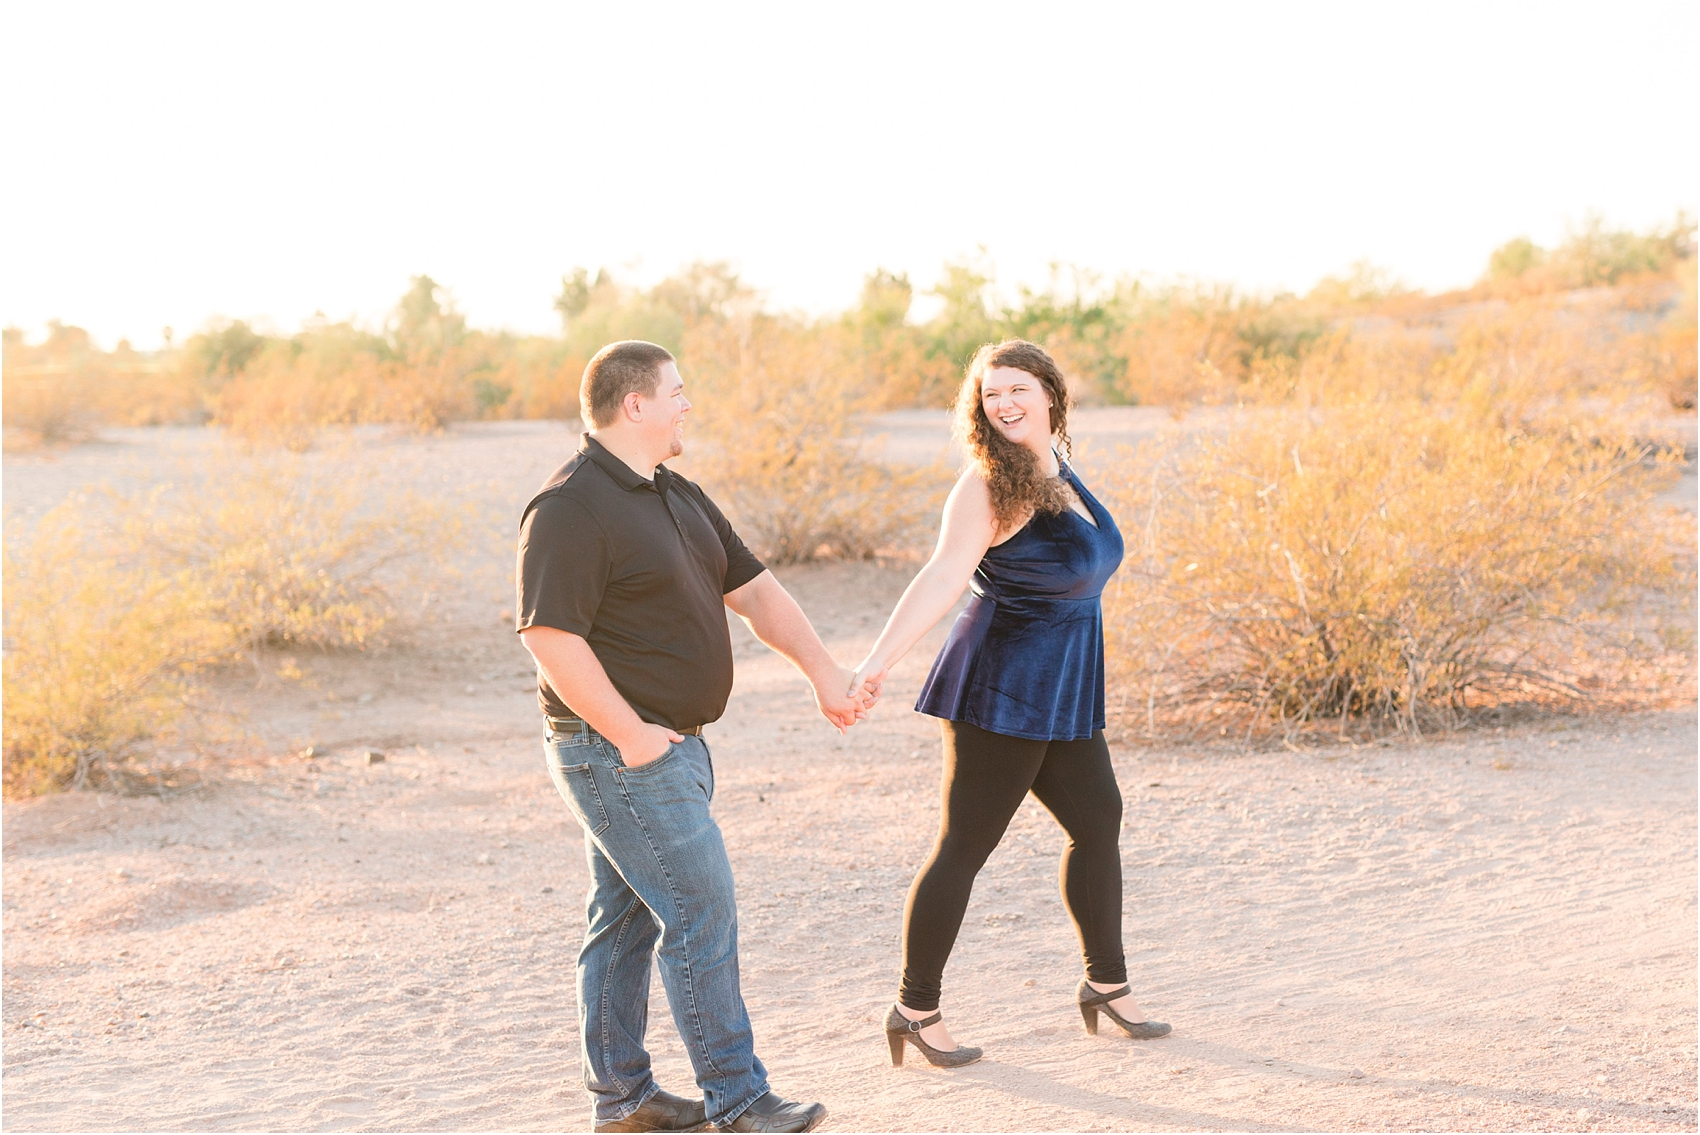 romantic-desert-engagement-photos-in-scottsdale-arizona-courtney-carolyn-photography-by-katelyn-james_0031.jpg